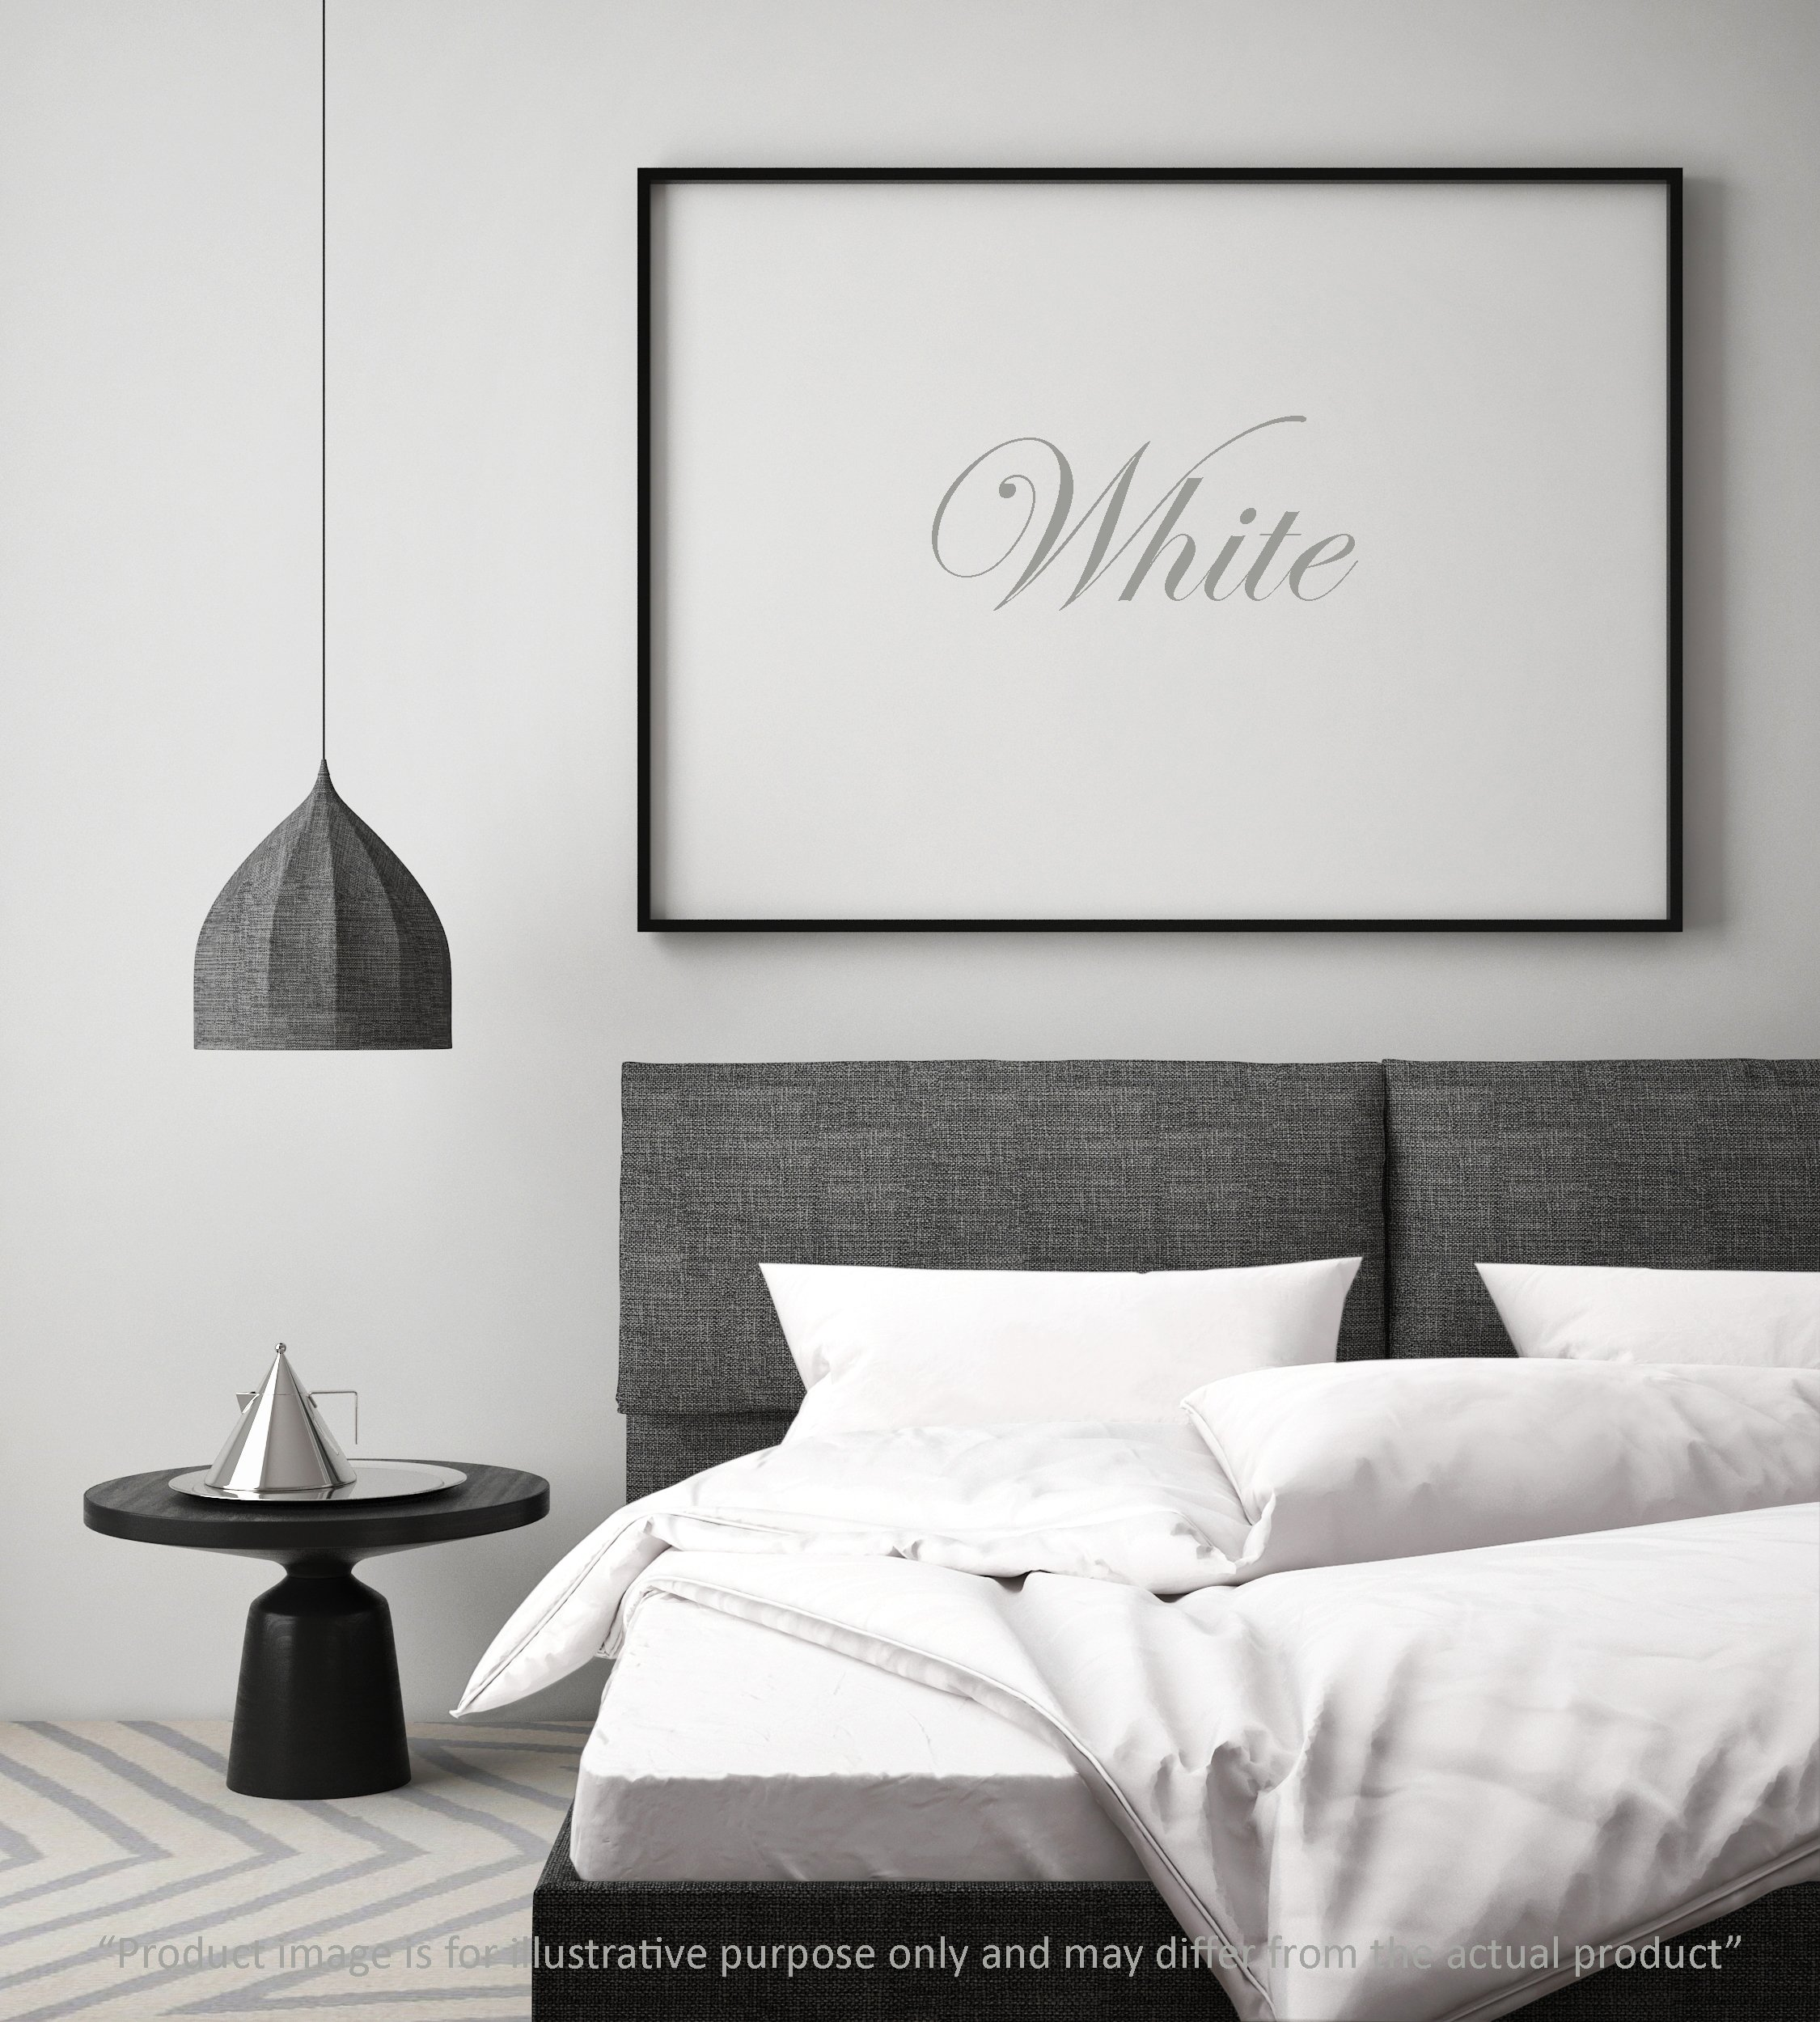 100% Cotton Percale Sheet Set, White Twin XL Sheet 4 Piece Set, Including 1-Extra Pillowcase, Long-Staple Compact, Deep Pocket Bedsheets, Crisp amd Strong Percale Weave by Linen Home